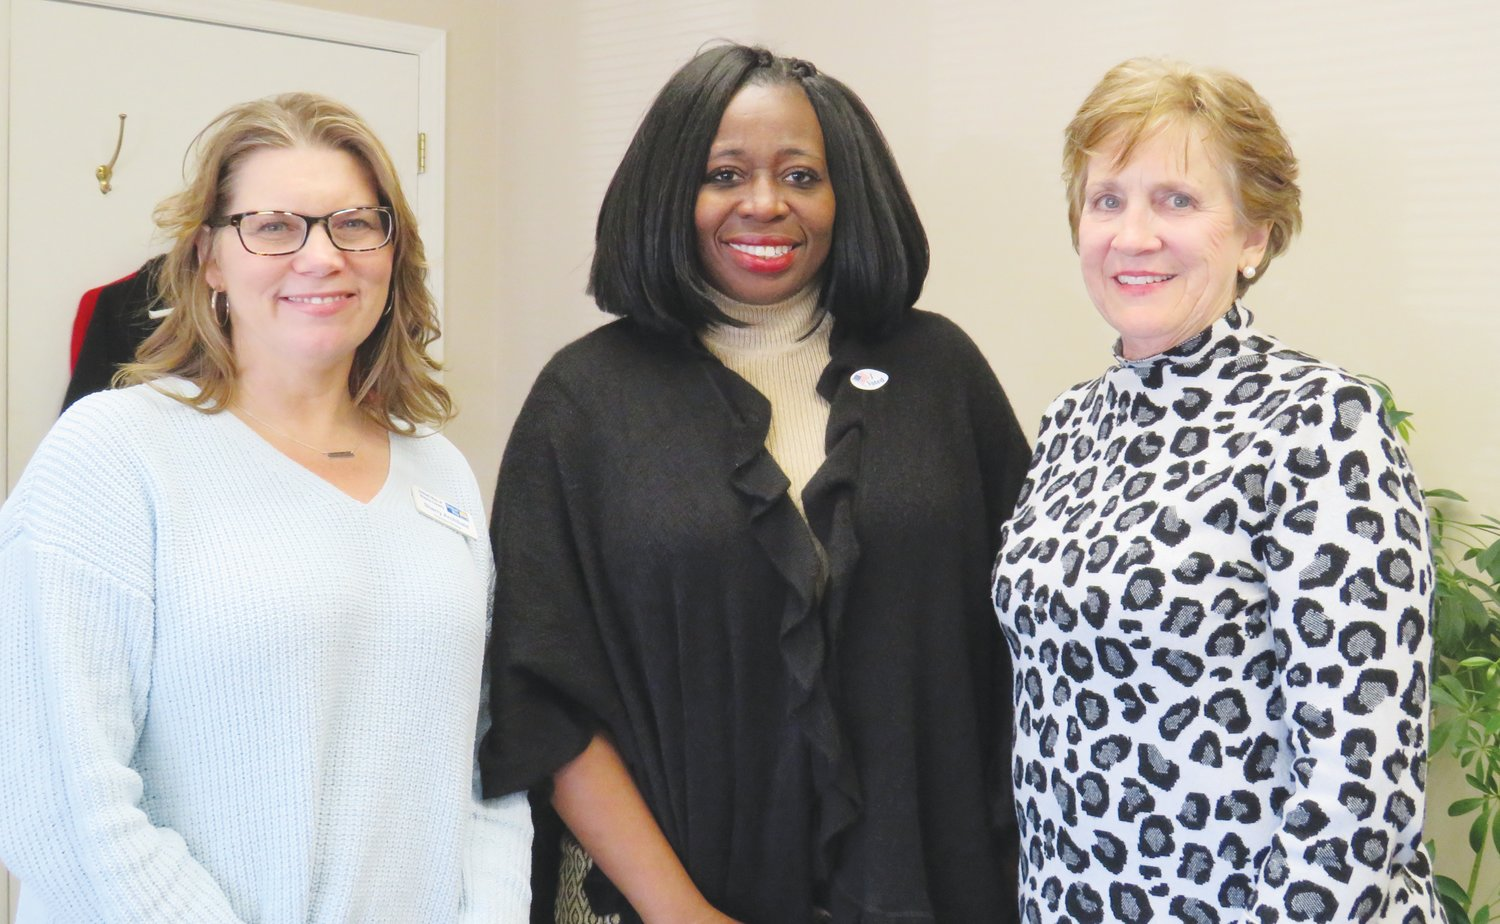 Pictured form left are Sherry Archibald, Patricia Beier and Brownie Doss. A United Way grant to WAGES' Elderly Nutrition Program supports a congregate feeding site in Mount Olive and Meals on Wheels for homebound seniors who are under 60.